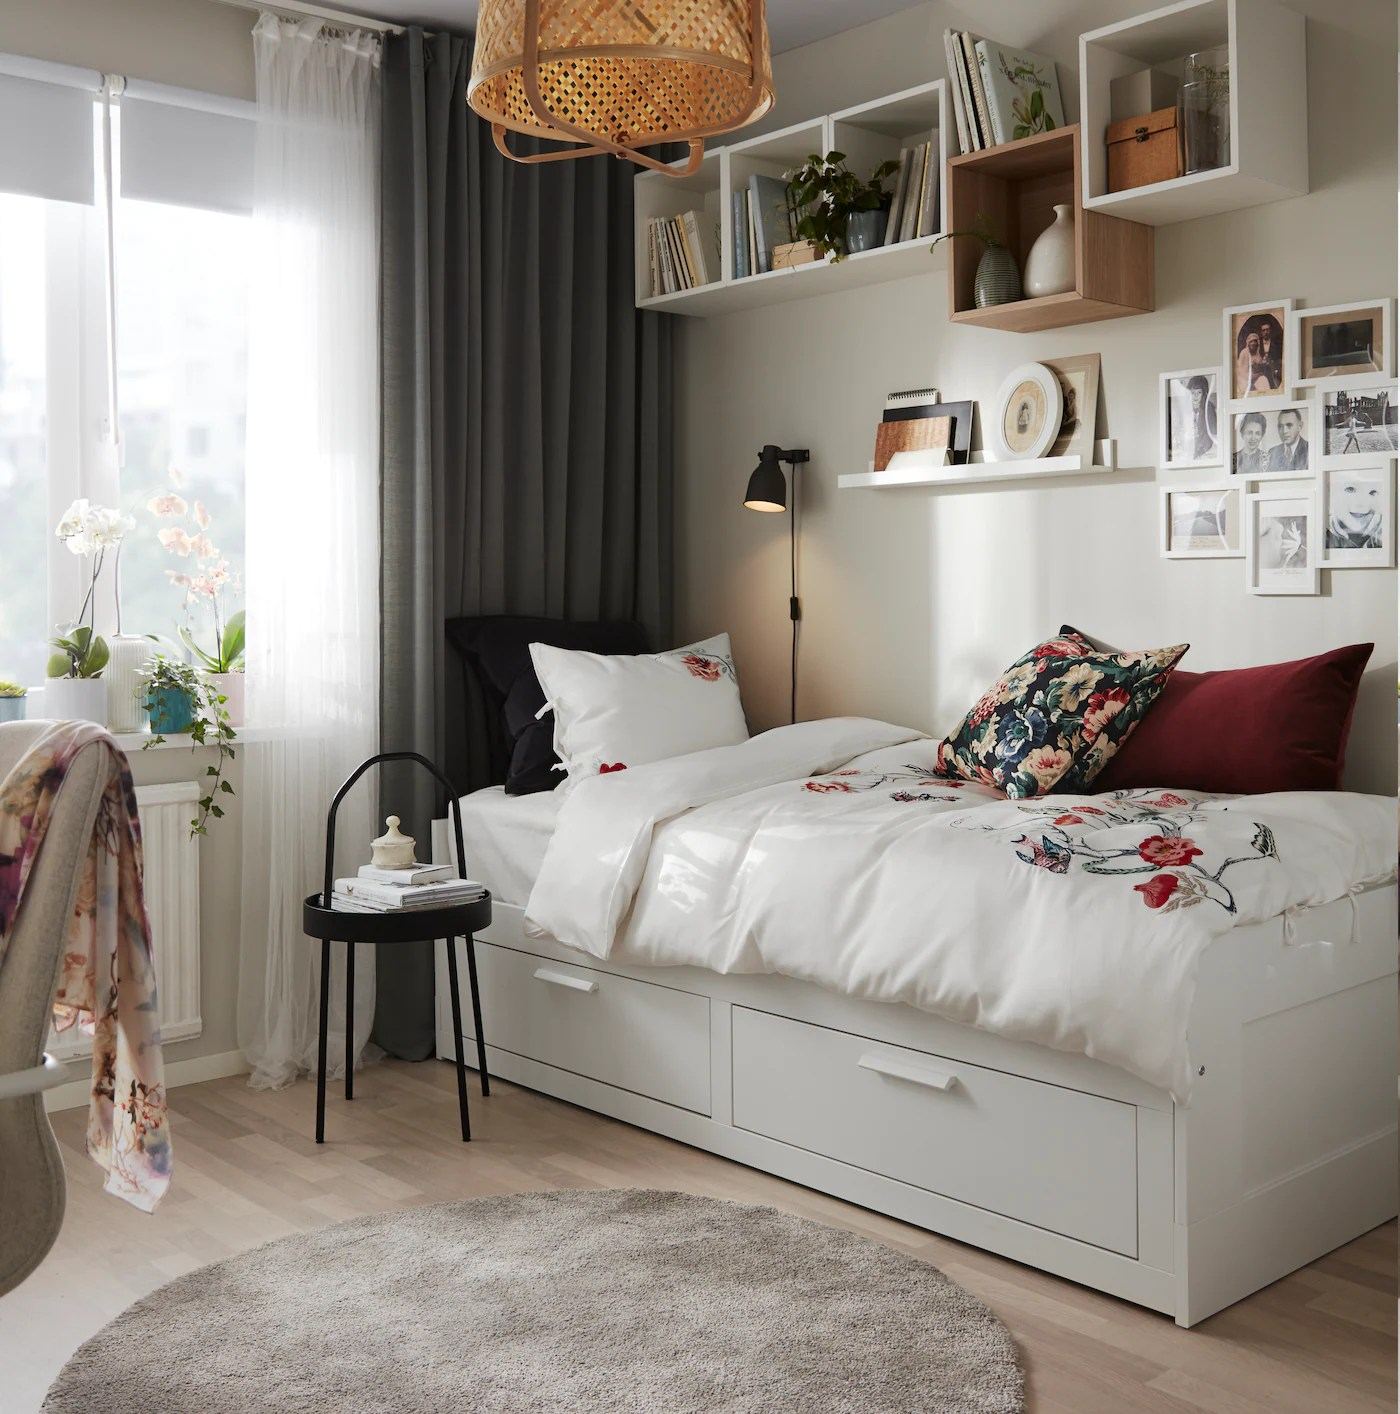 Make The Most Of Storage In Small Spaces Ikea Ca